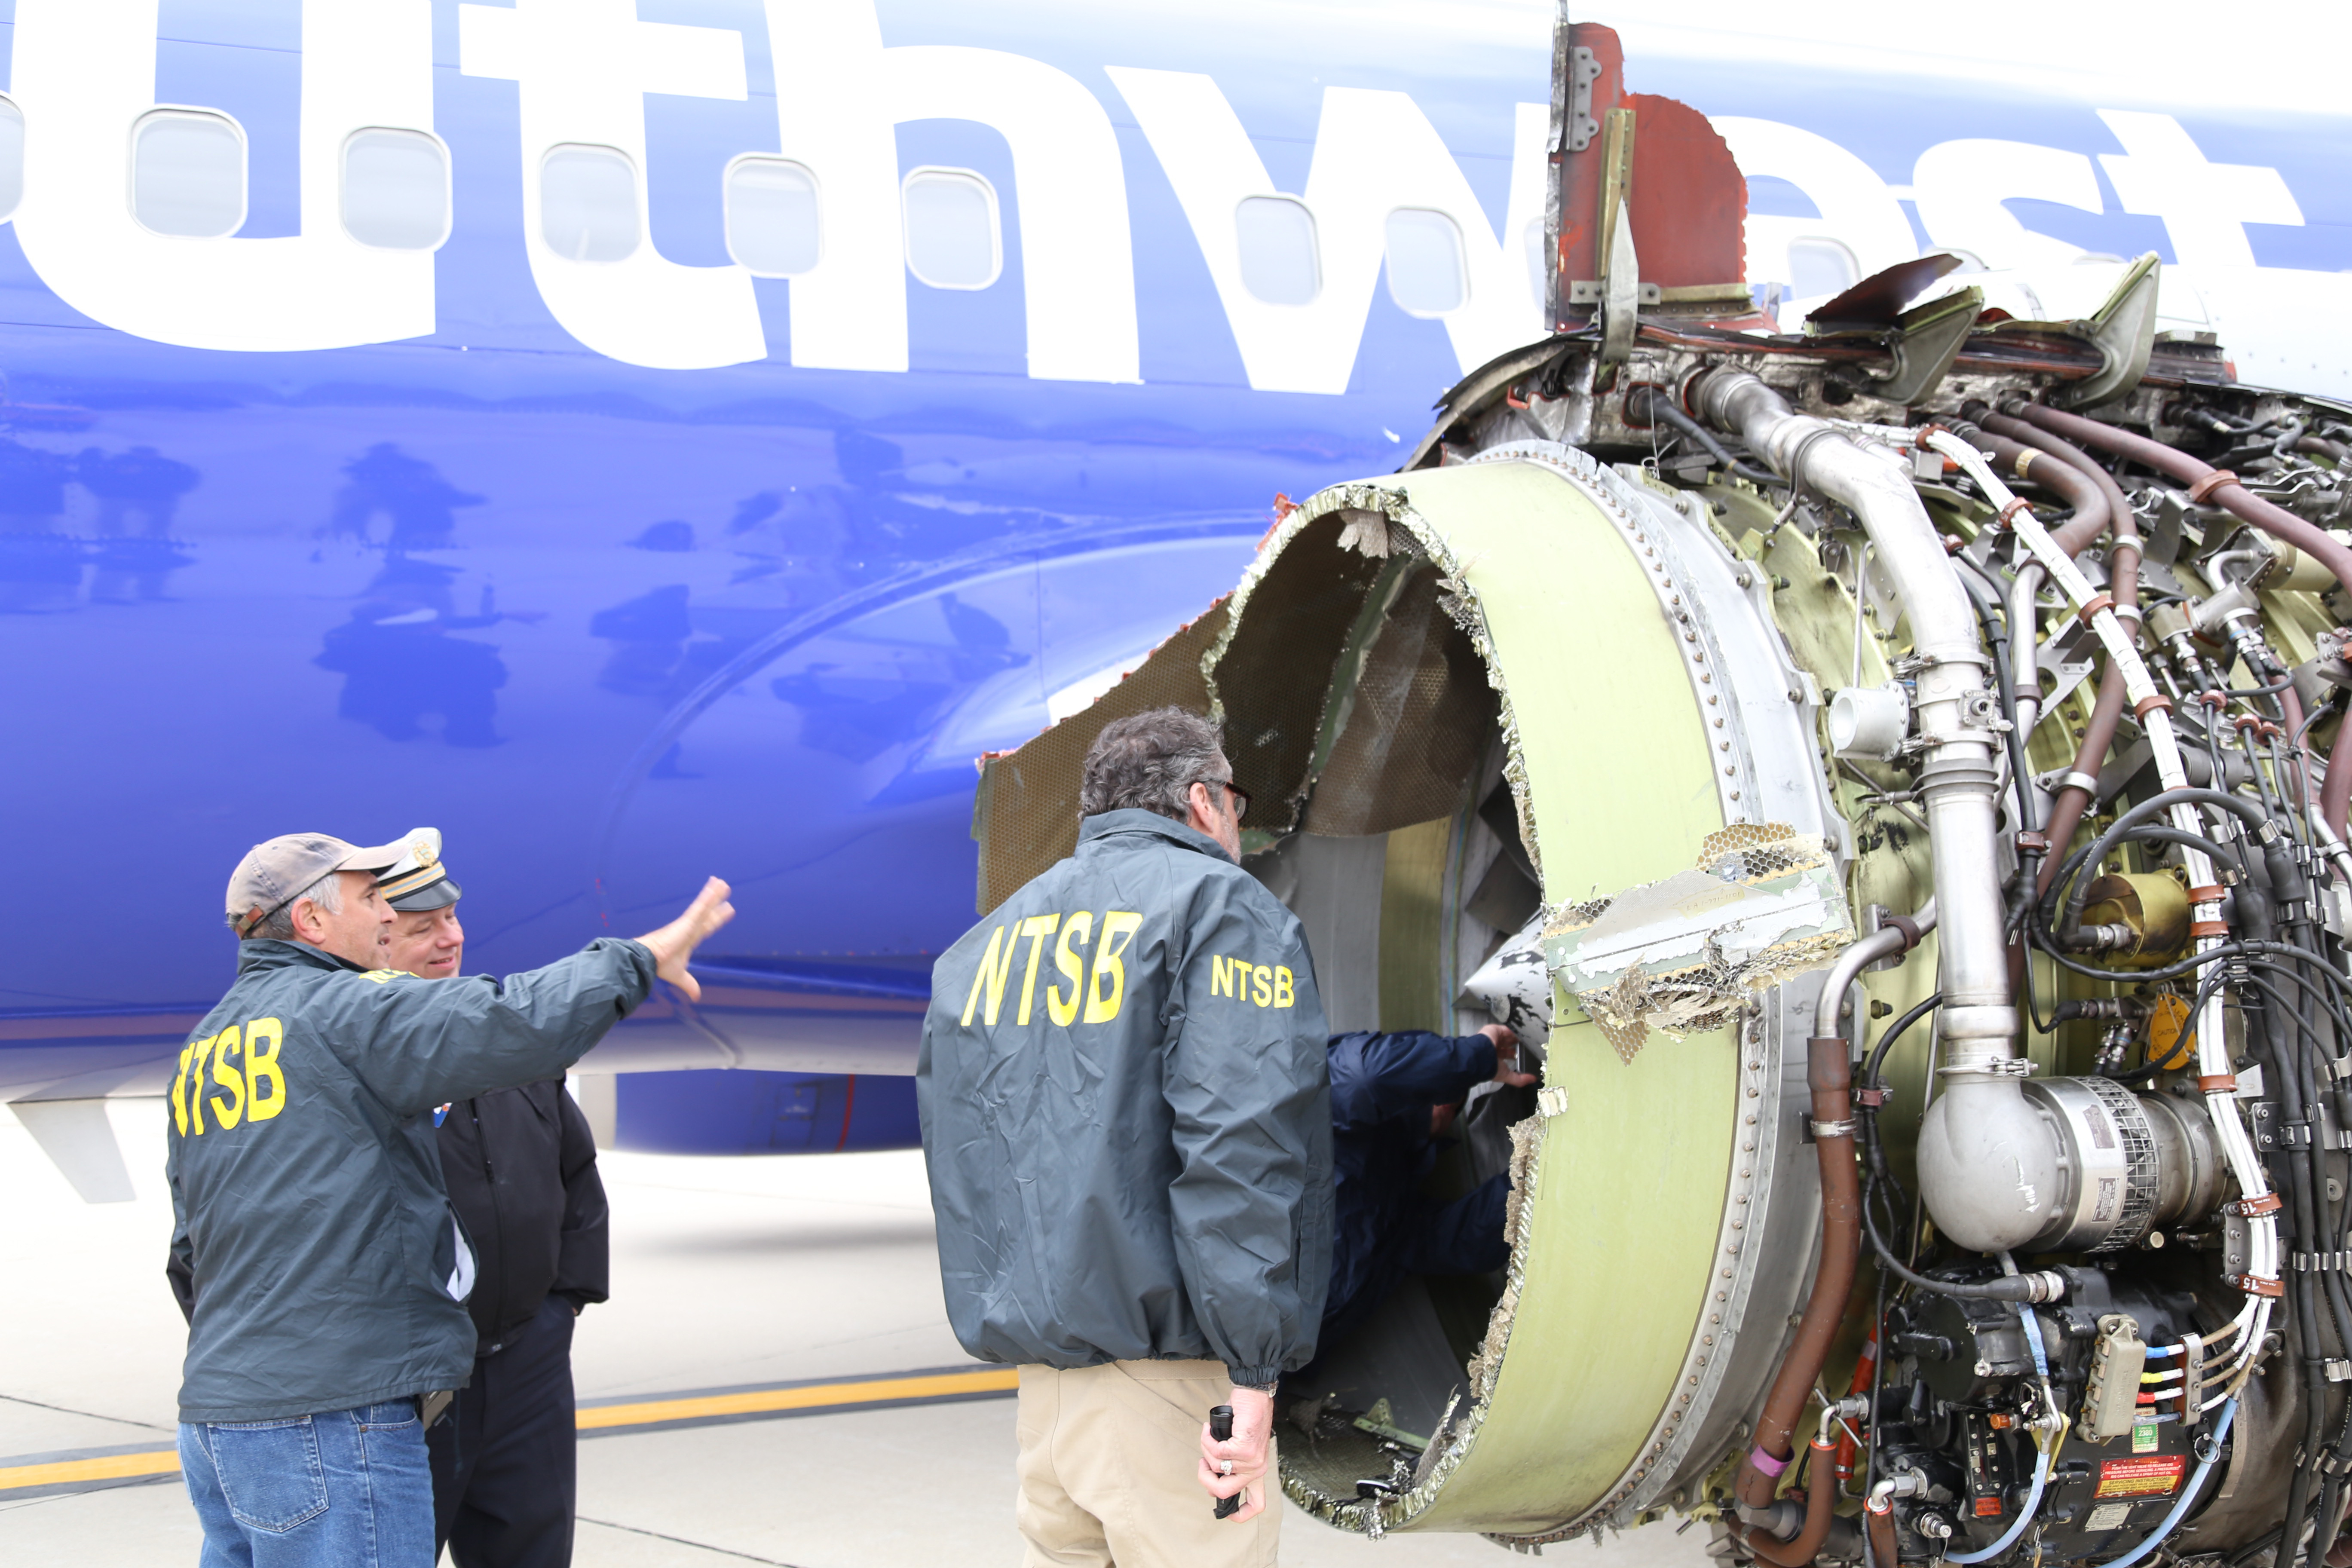 NTSB examining engine structure's collateral damage on